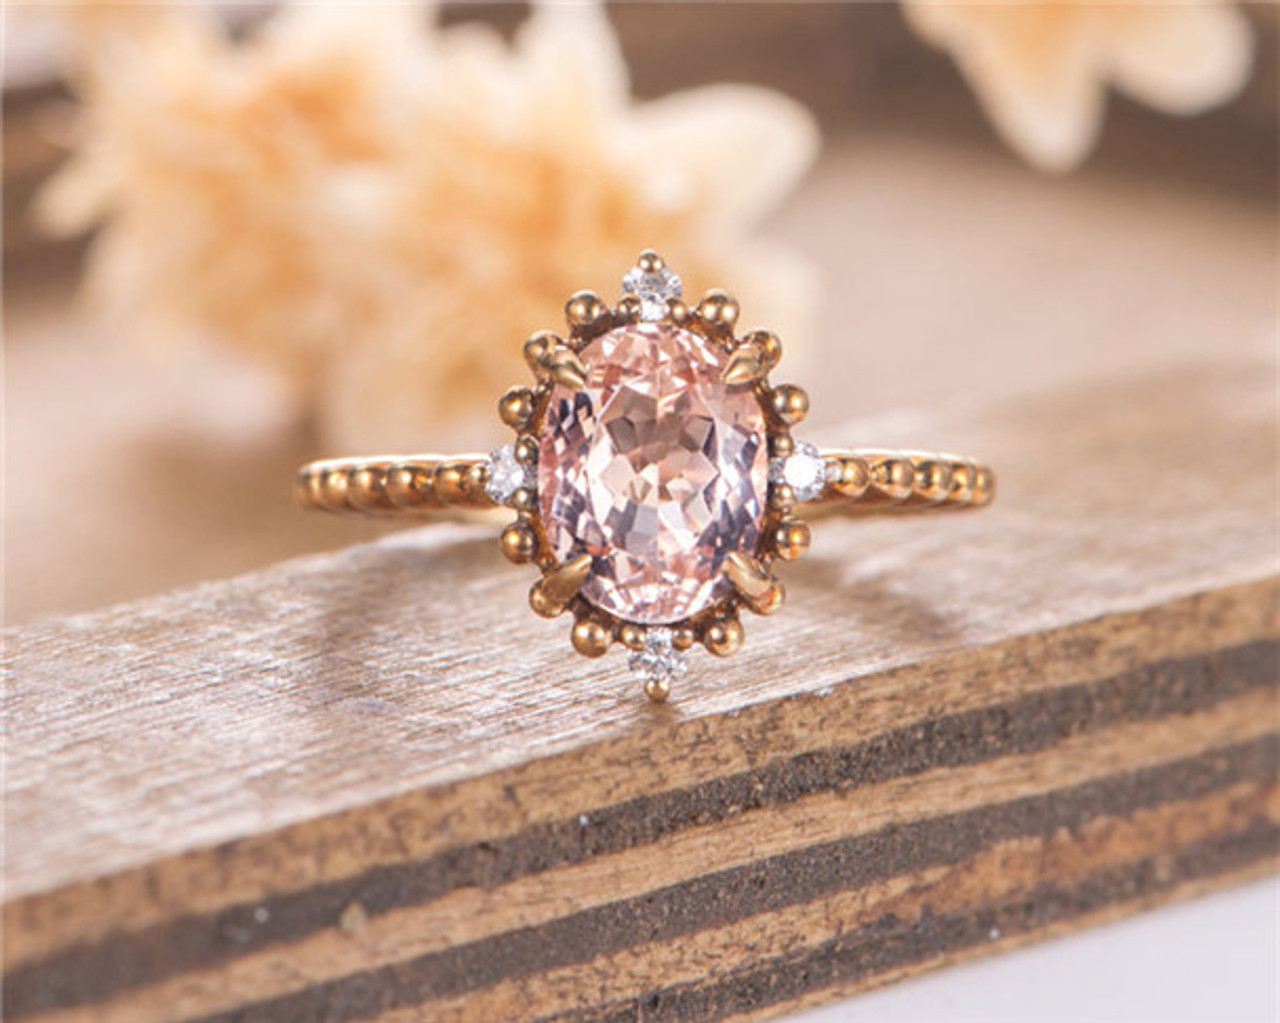 Morganite Engagement Ring Oval Cut Yellow Gold Halo Diamond Bridal Women Wedding Ring Vintage Anniversary Gift